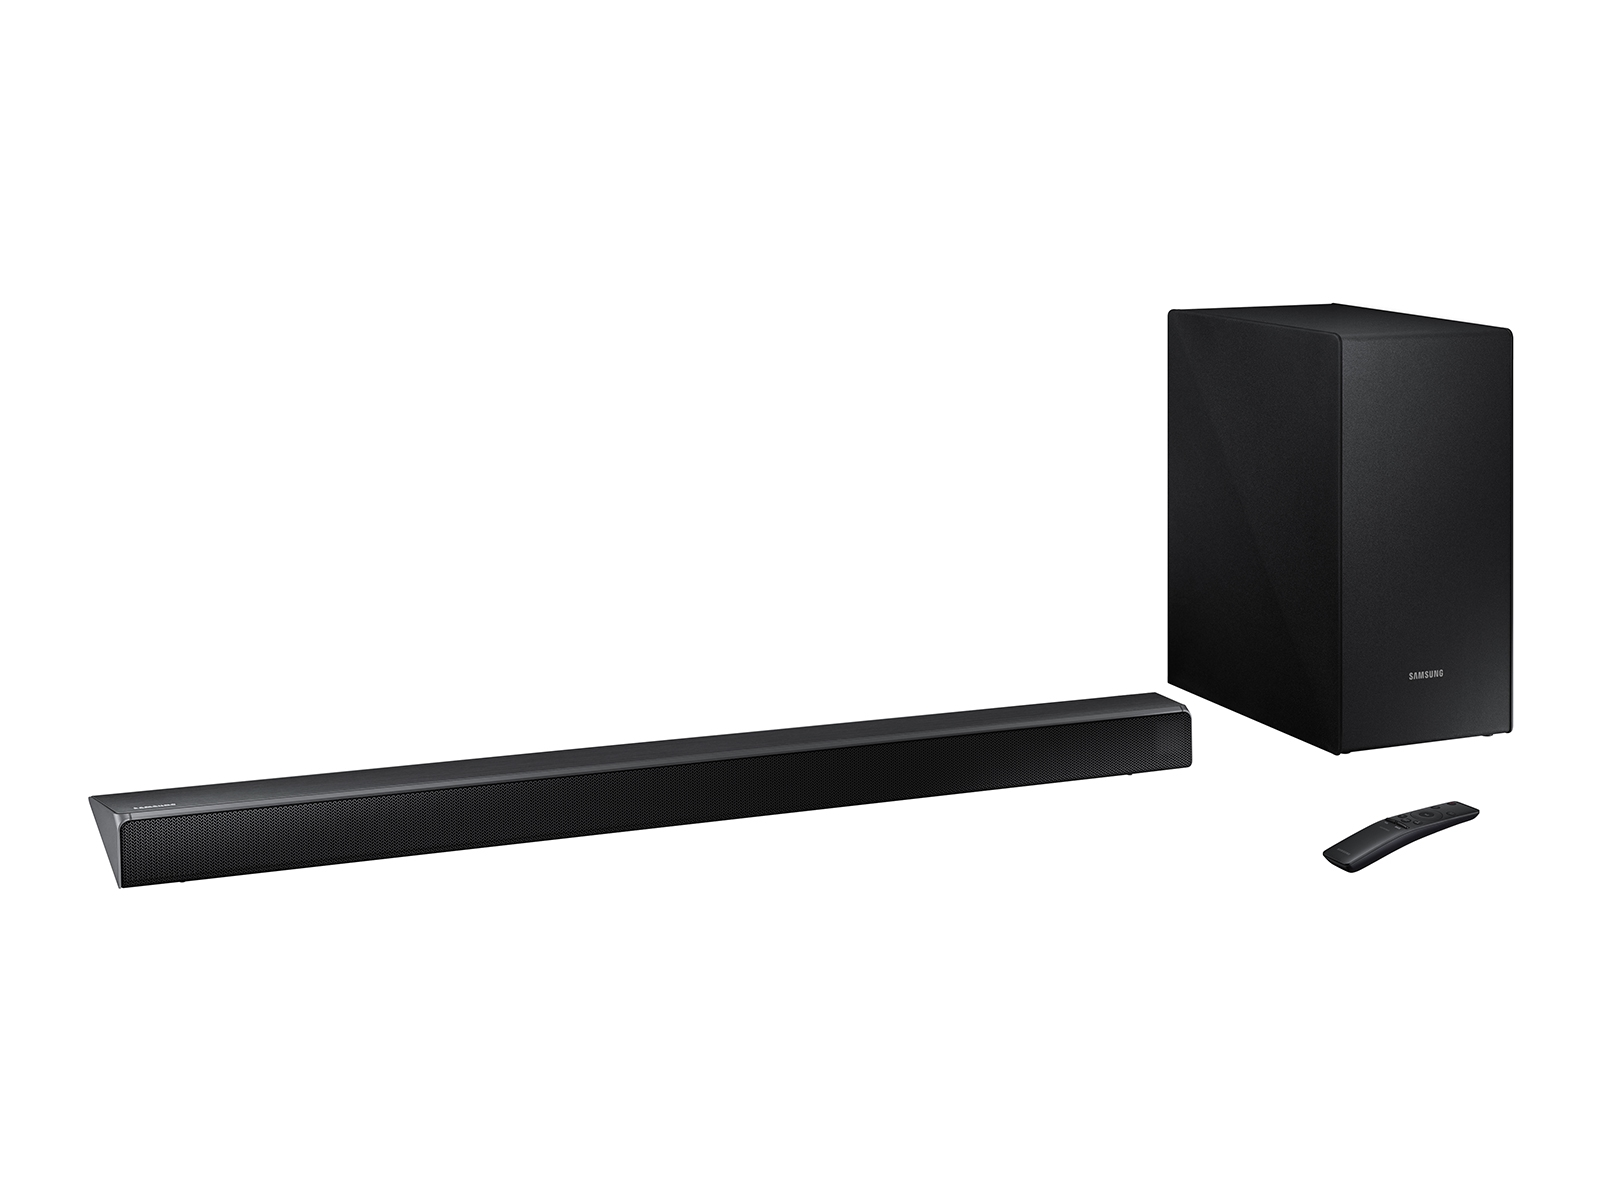 HW-N450 Soundbar Home Theater - HW-N450/ZA | Samsung US